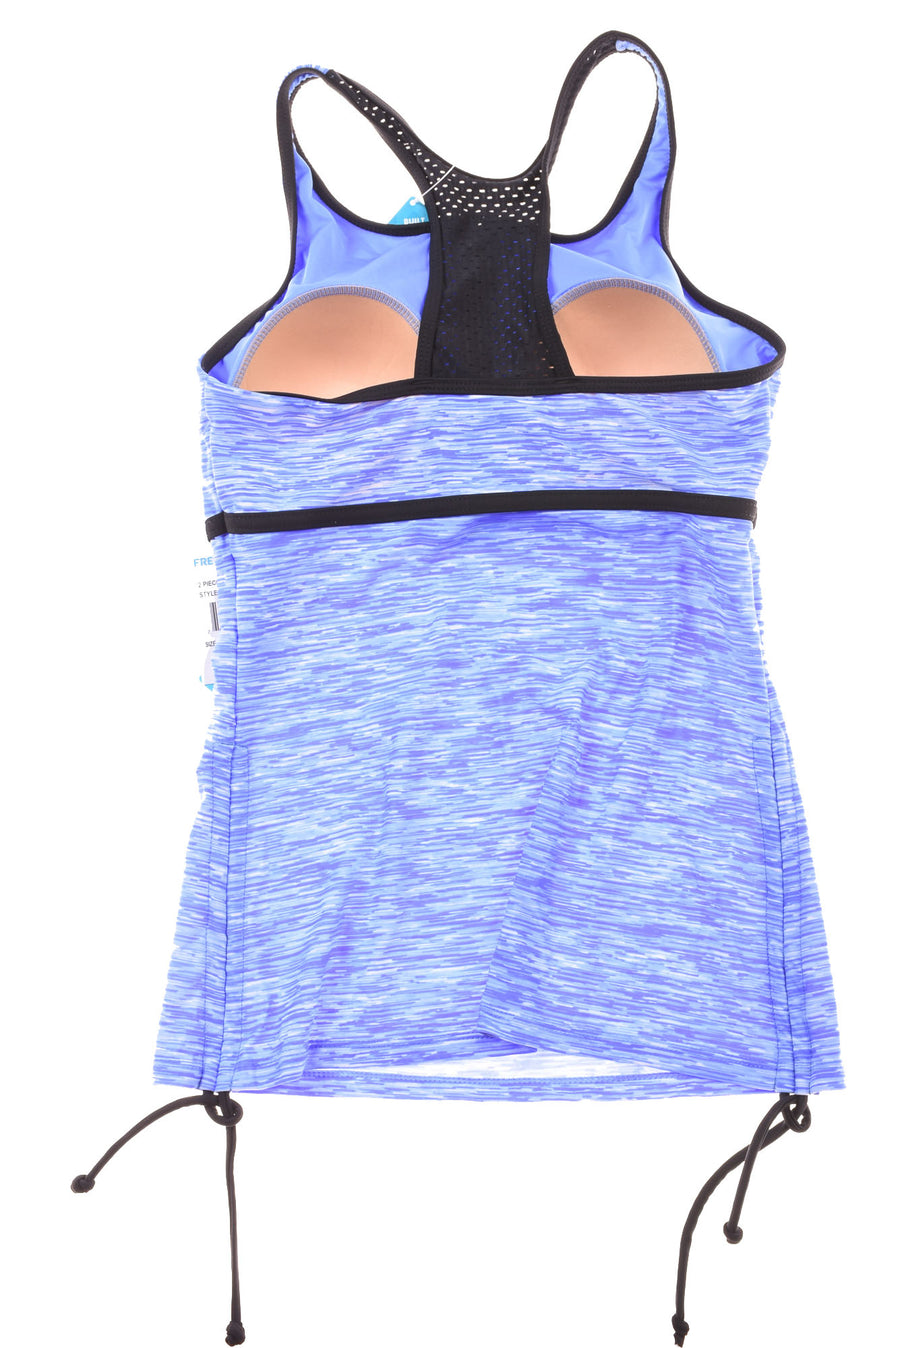 NEW Free Country Women's Swim Top Medium Blue & Black